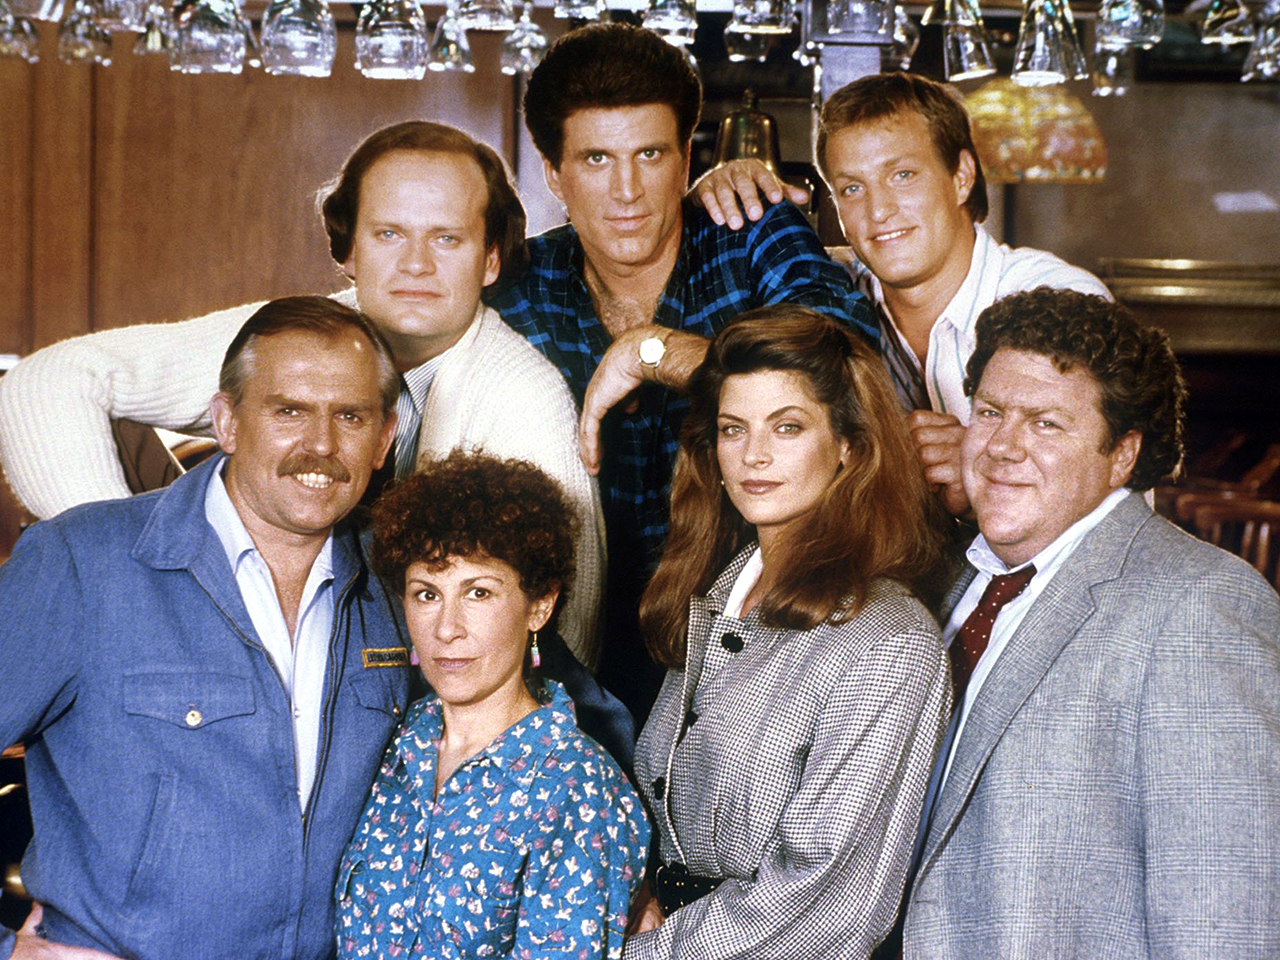 6C7495022 tdy 130520 cheers cast Raise Your Glasses To These Facts You Might Not Have Known About Cheers